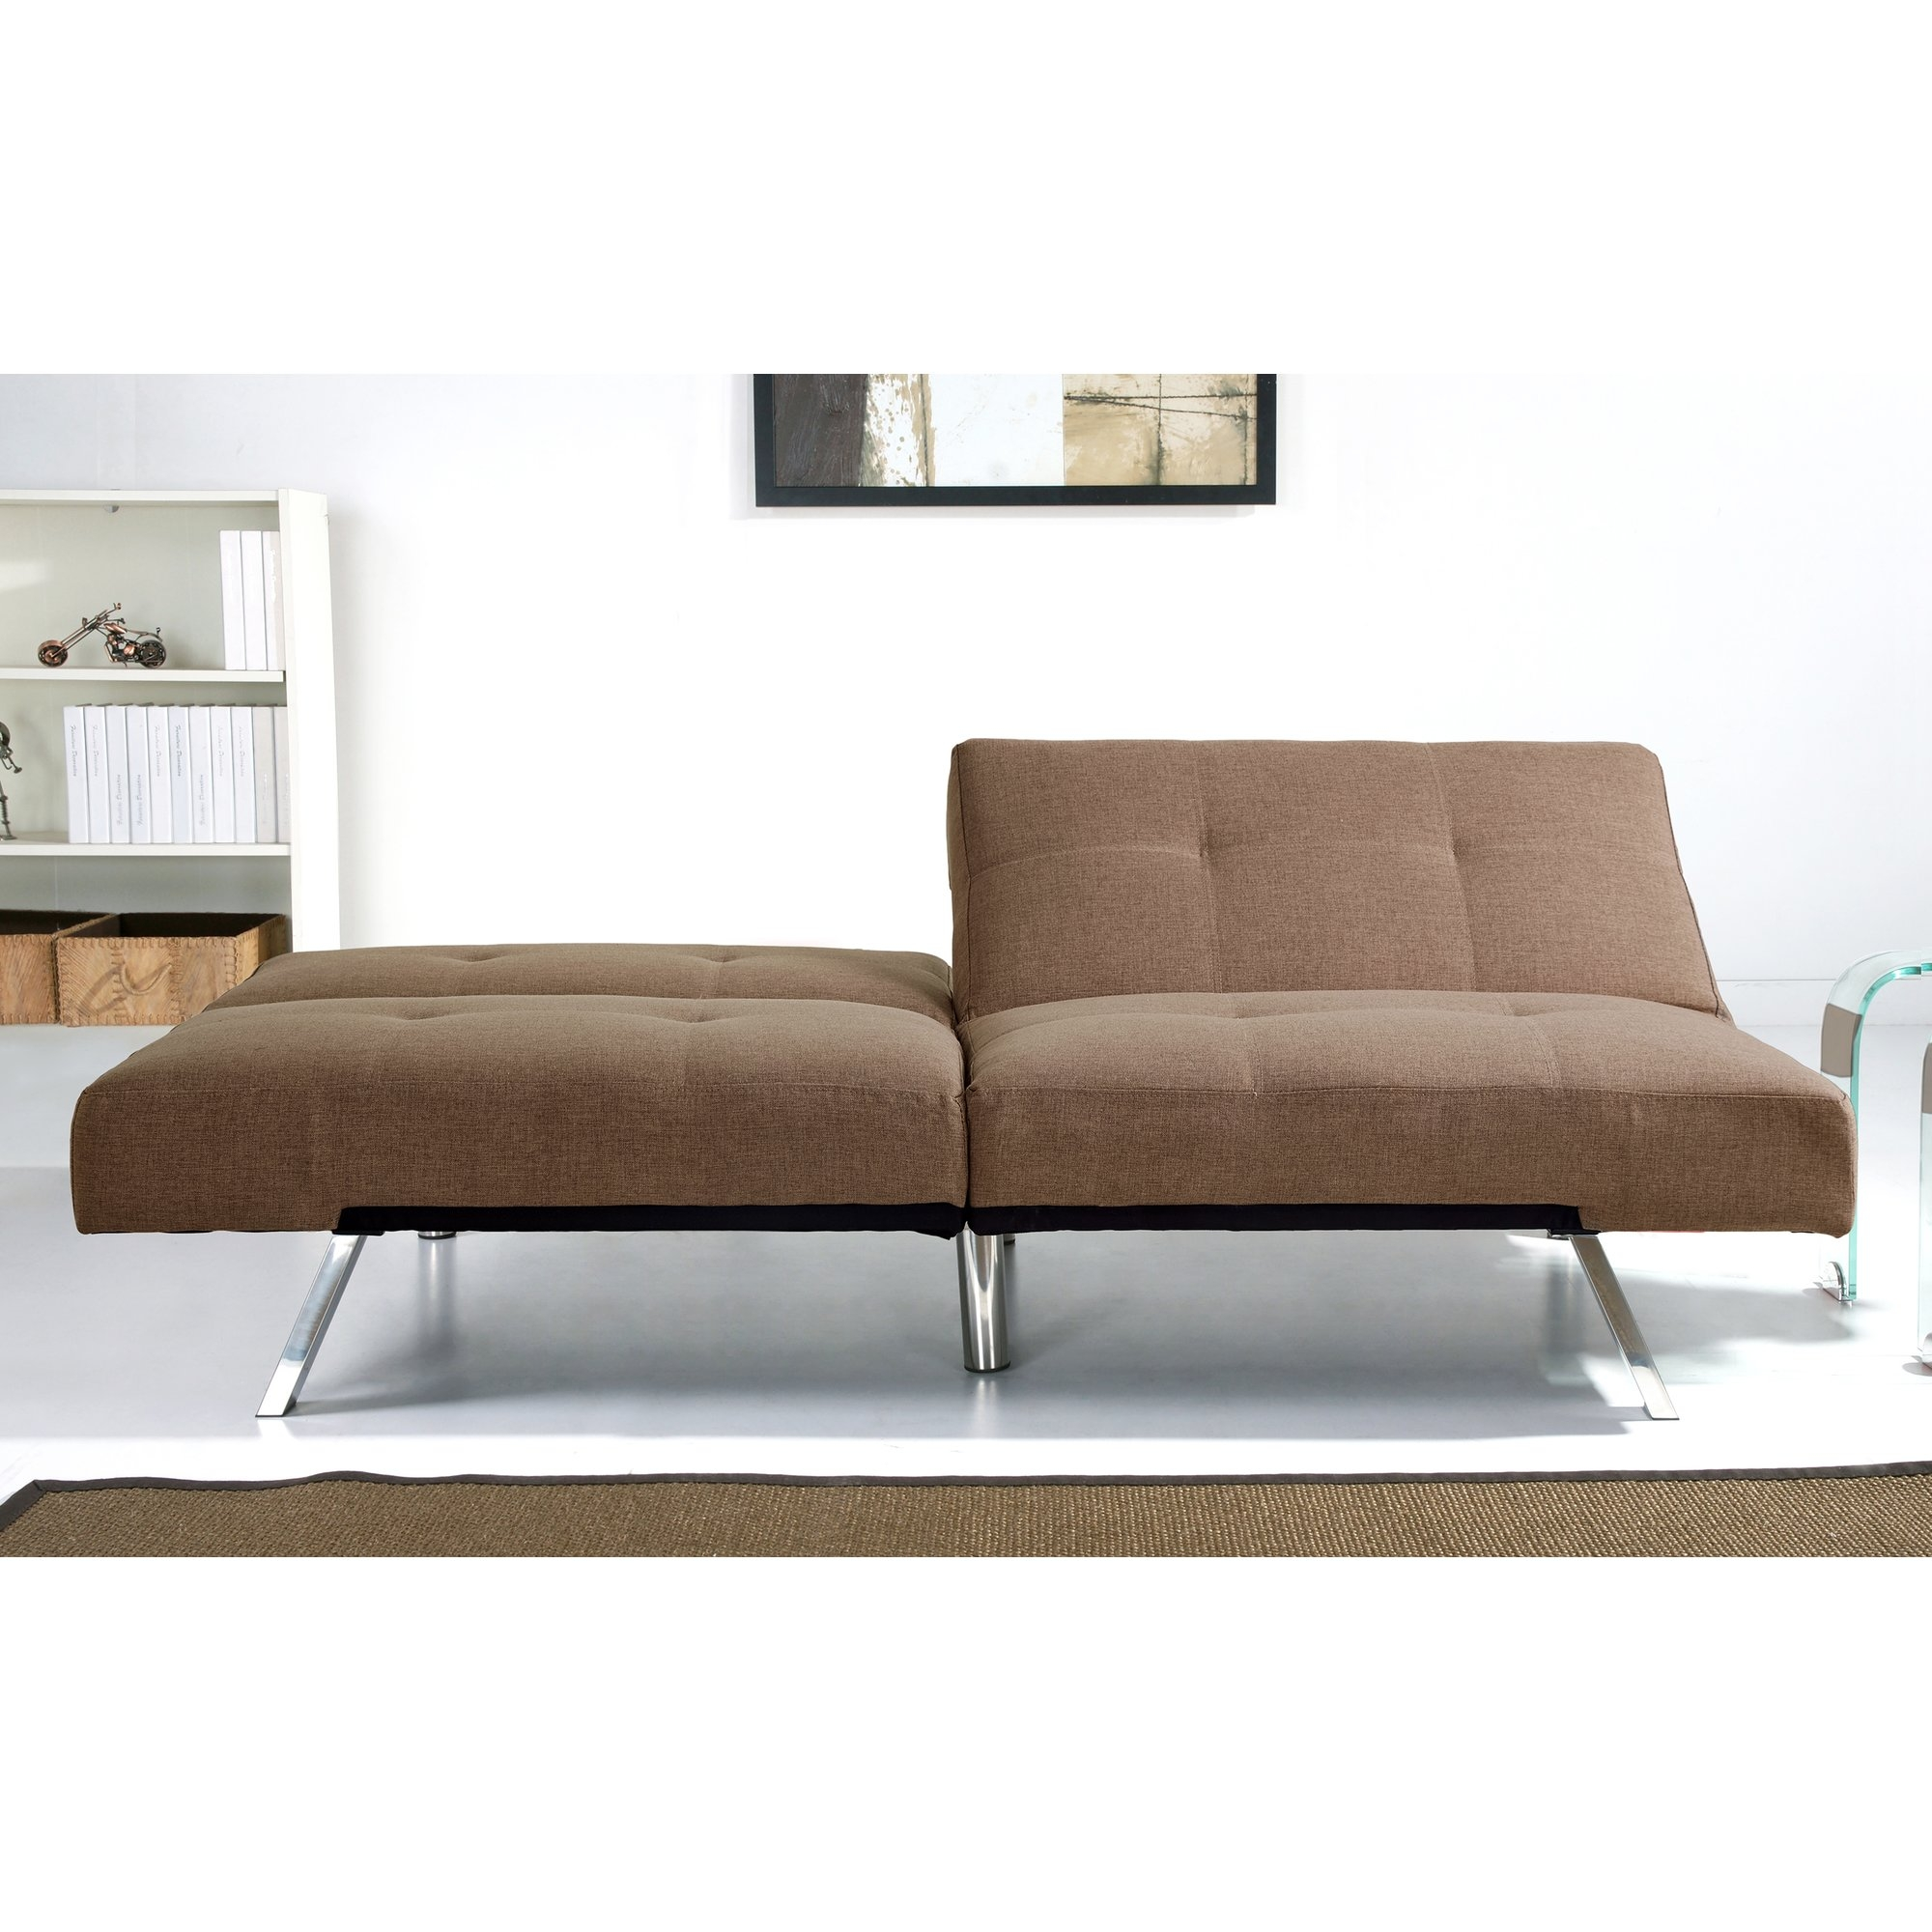 Featured Image of 70 Sleeper Sofa